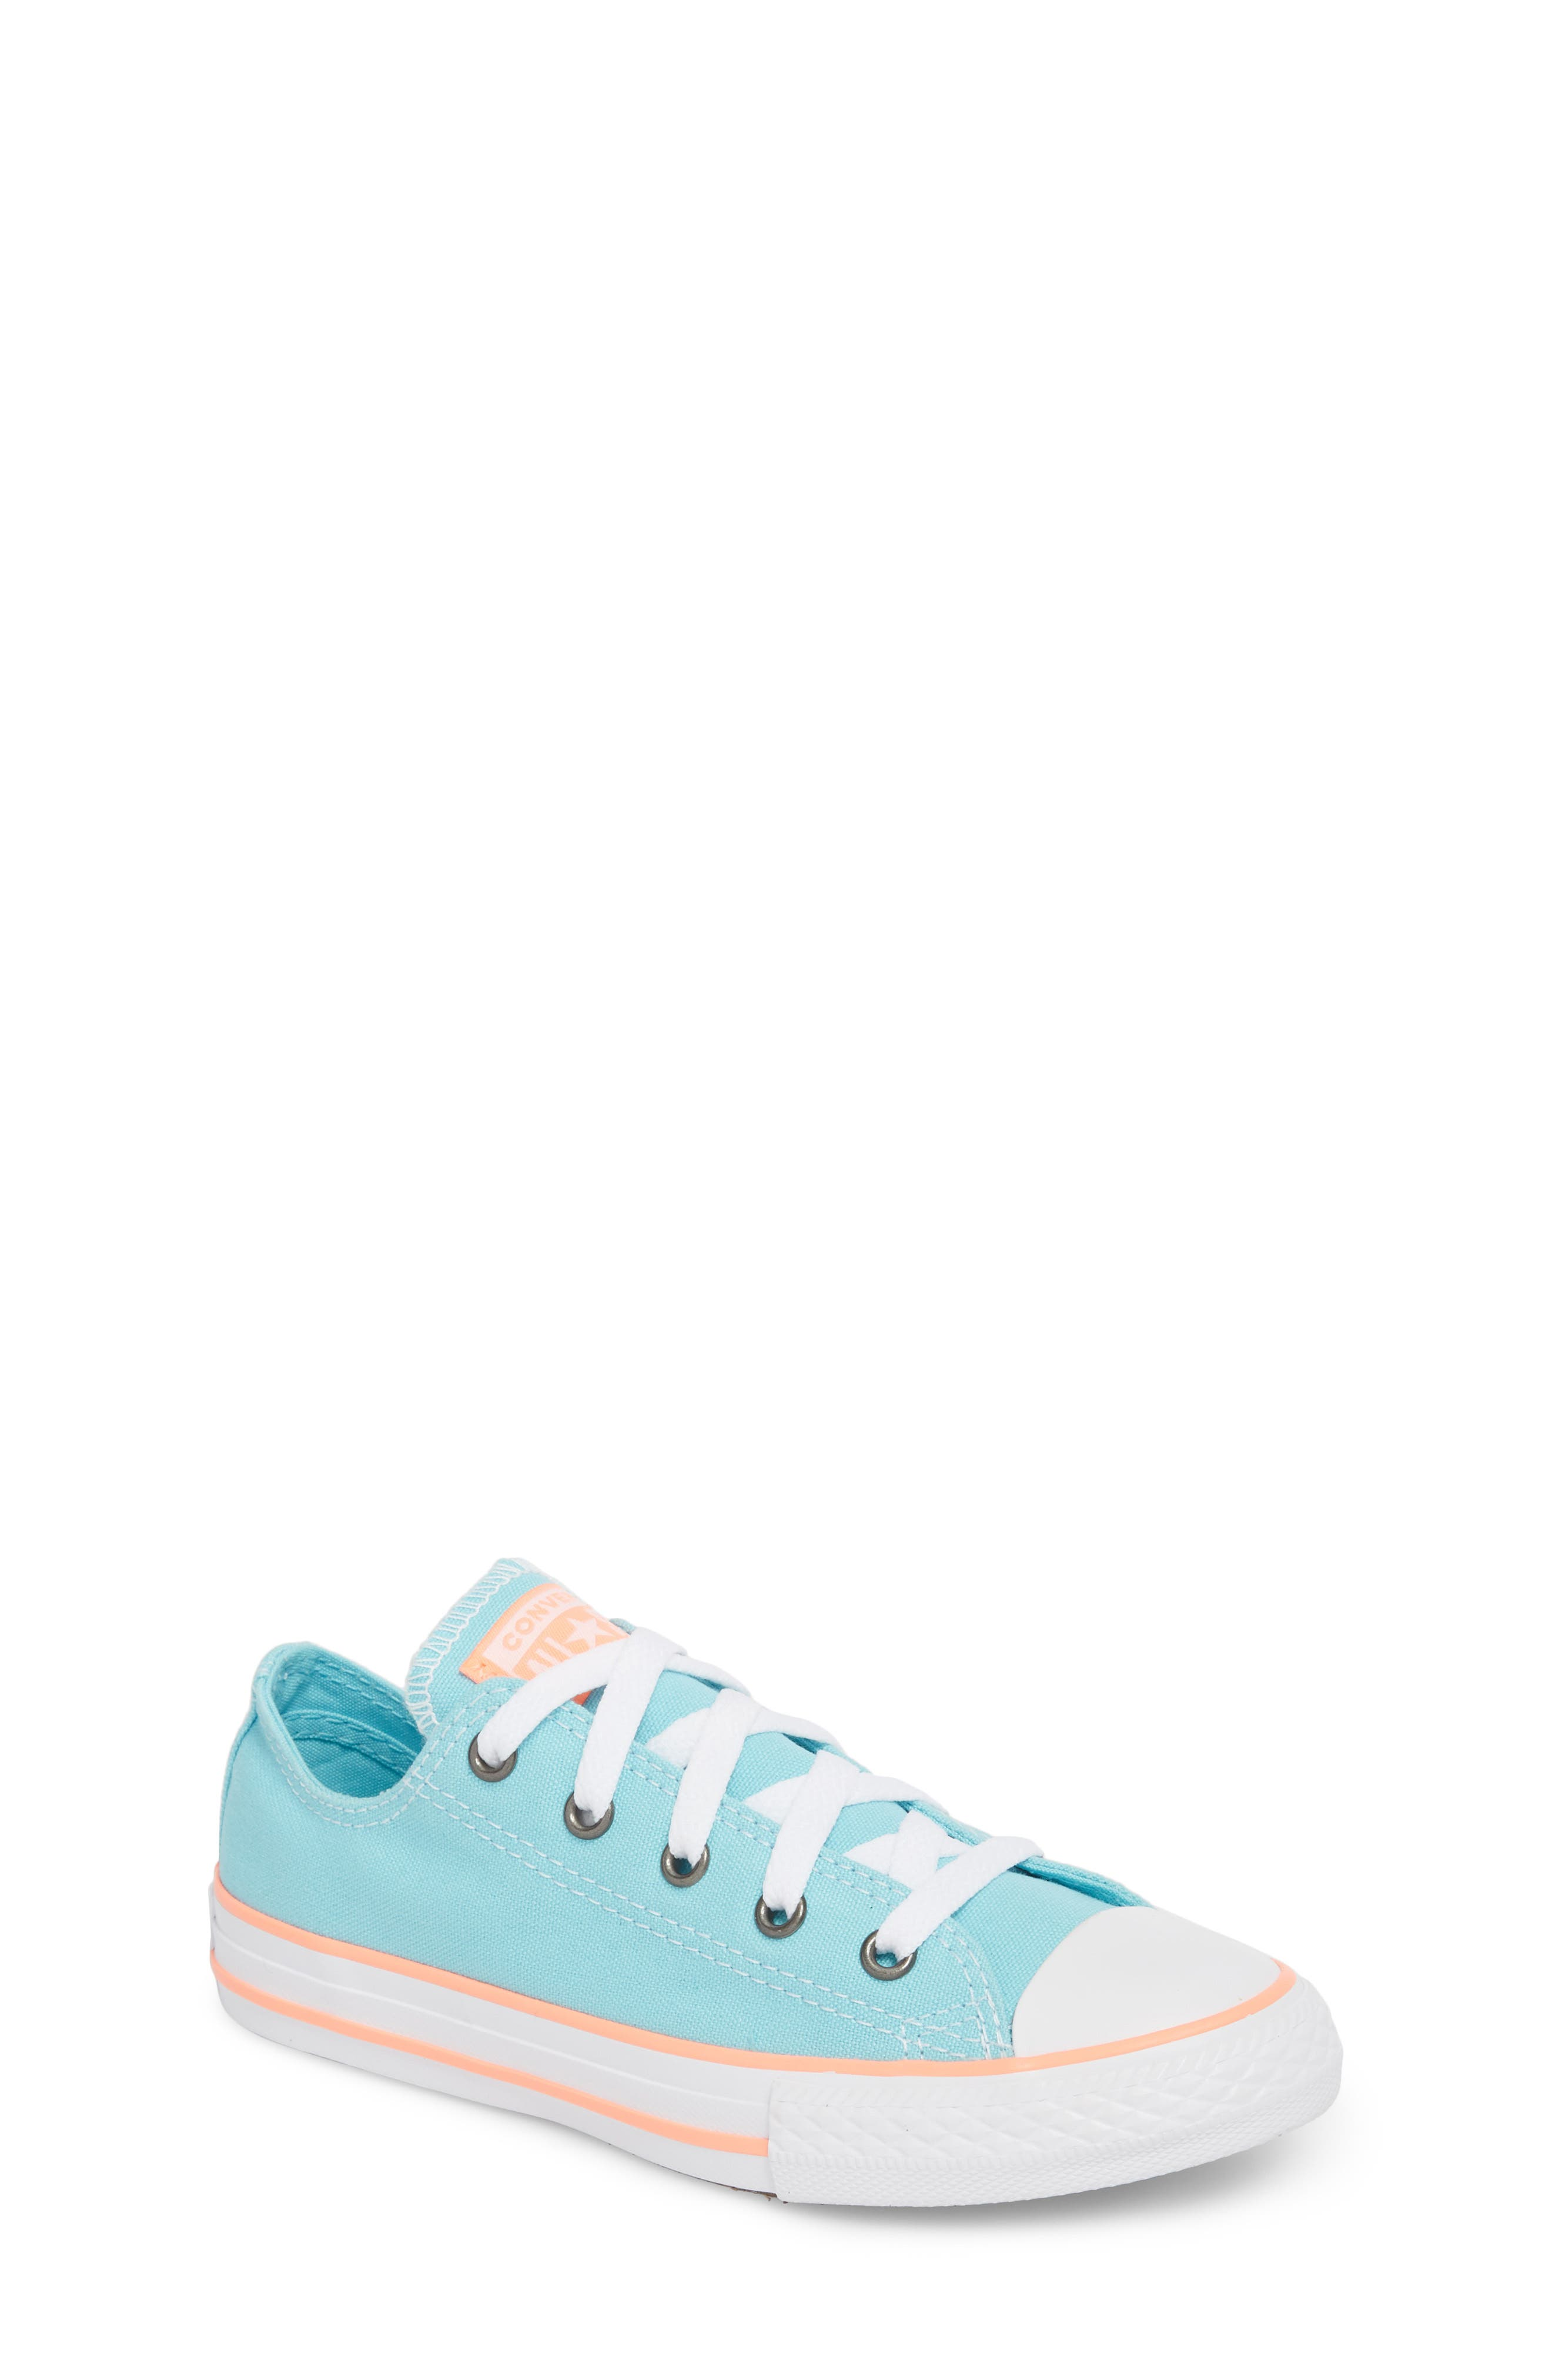 All Star<sup>®</sup> Low Top Sneaker,                         Main,                         color, 486